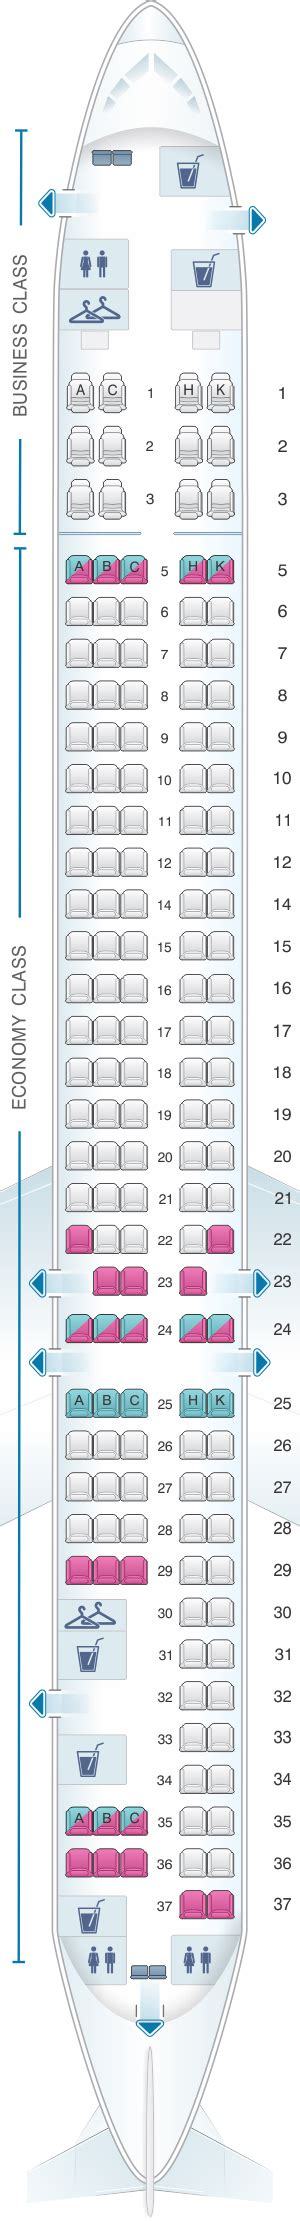 md 90 seating chart image gallery md 90 seating